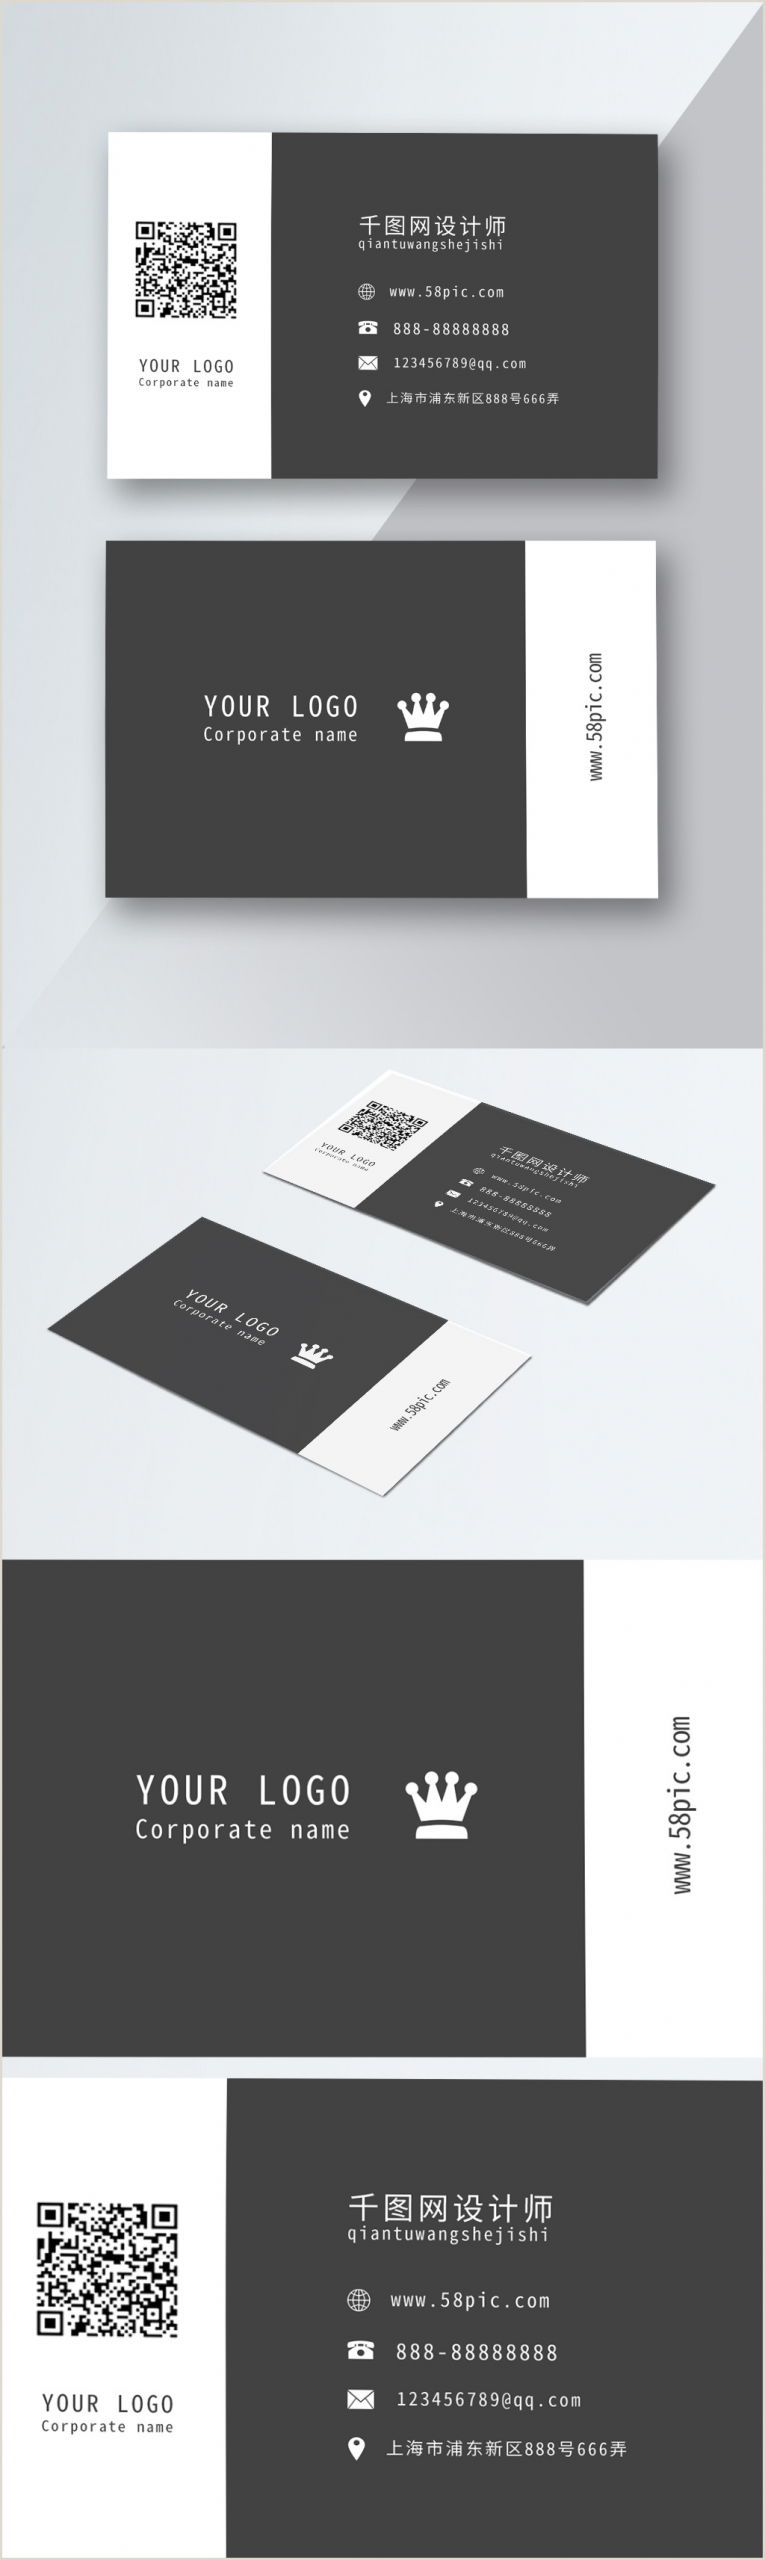 Professional Personal Business Cards Luxury Professional Personal Business Card Template